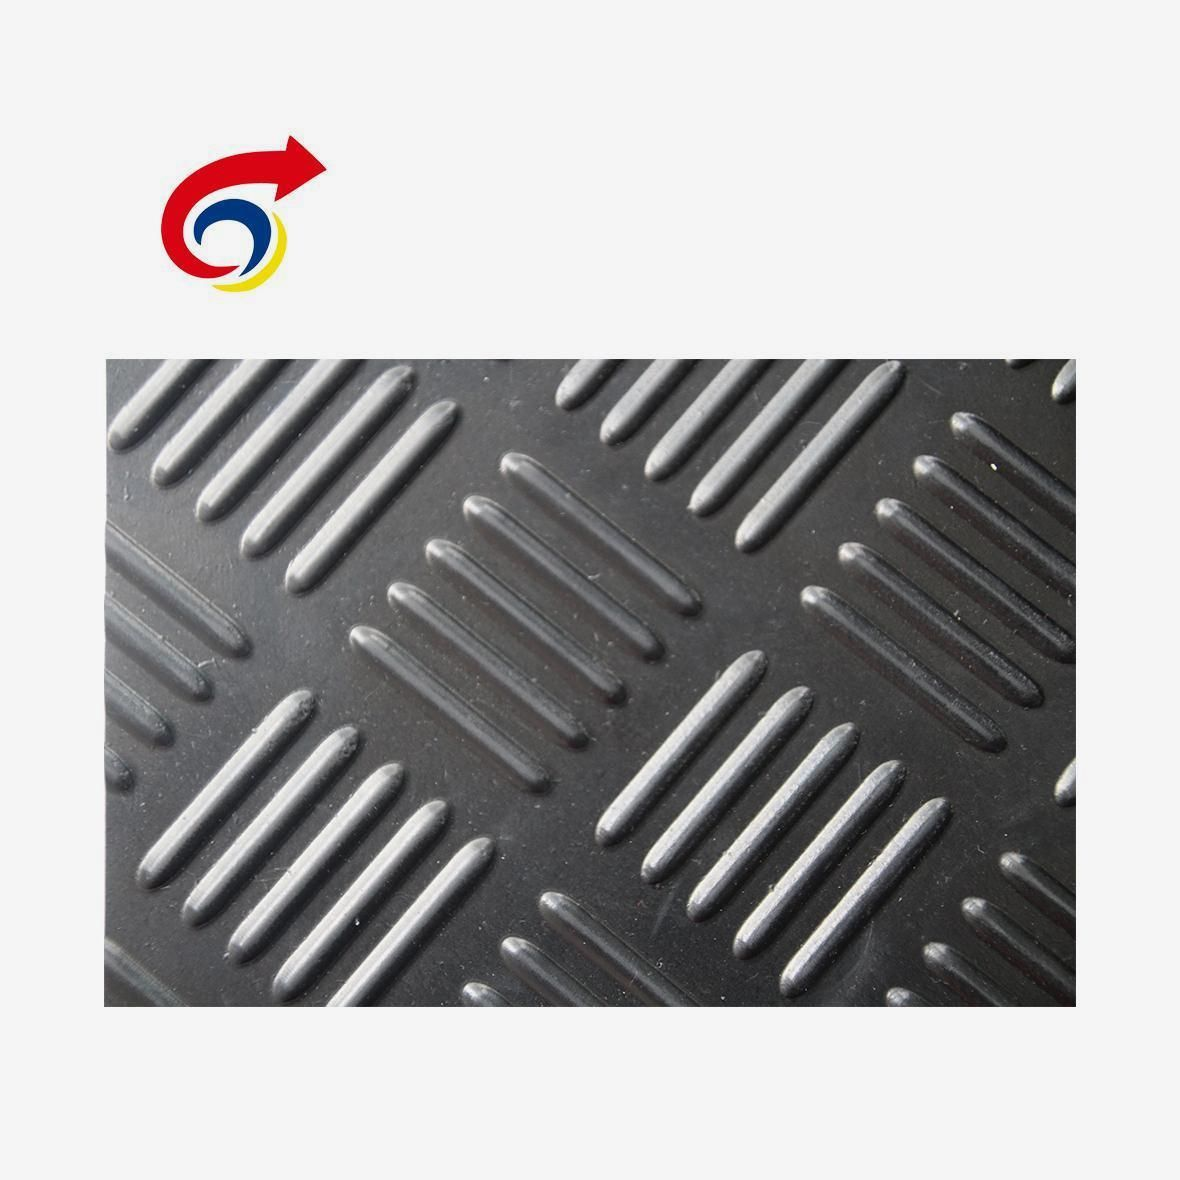 Insulating Rubber Sheet Five Stroke Armband 2195 Rubber Rubber Mat Sheets